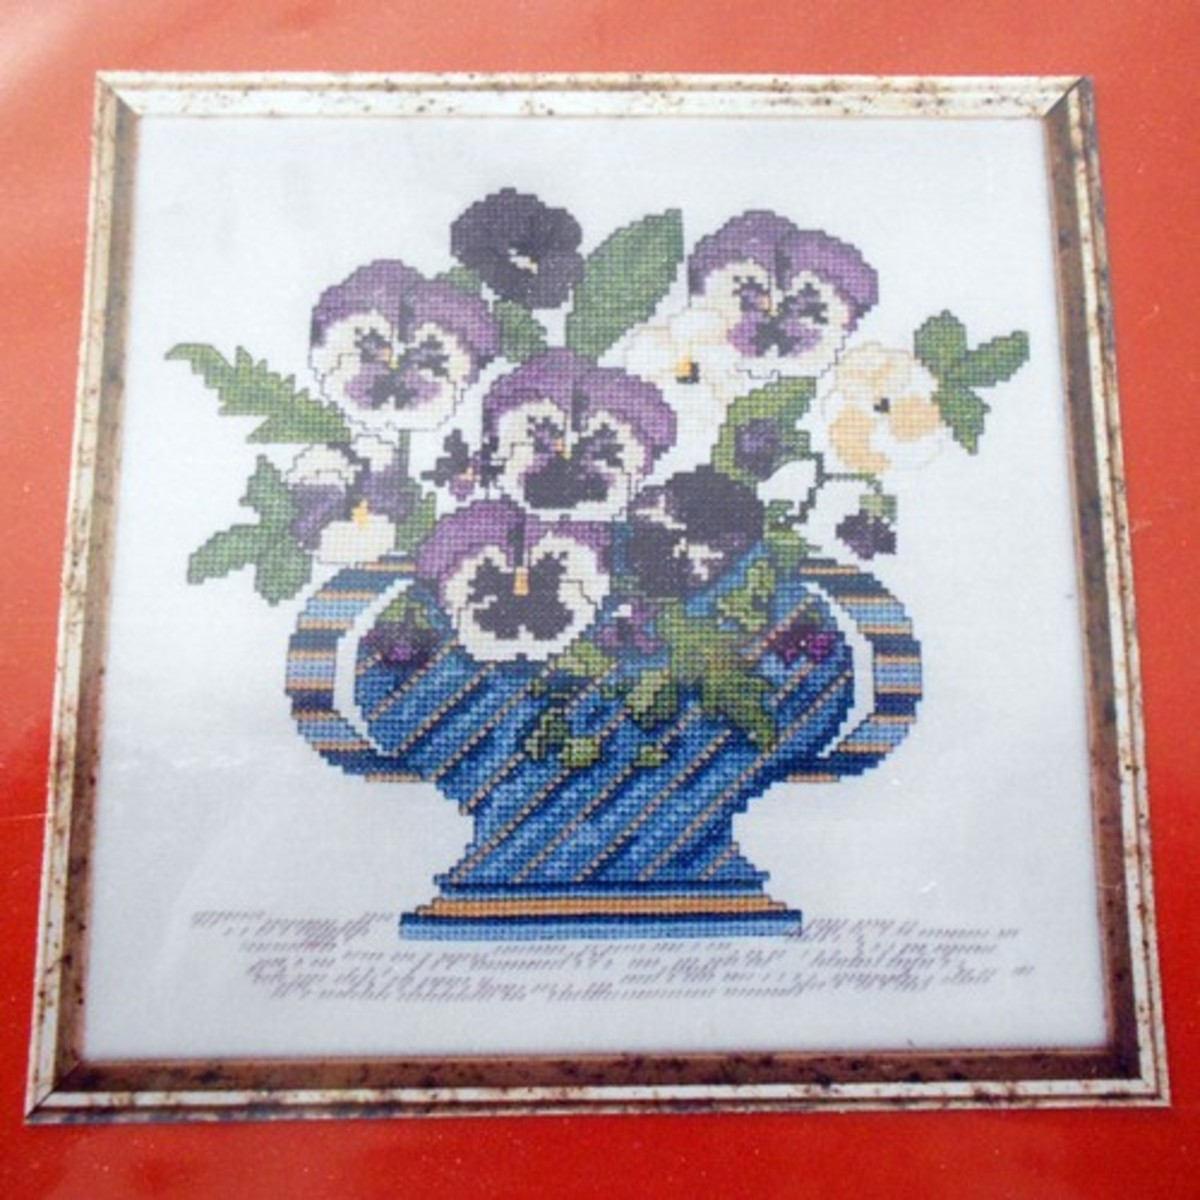 A pretty cross-stitch kit can be made into a beautiful gift - pansies are traditional for the first Wedding Anniversary.